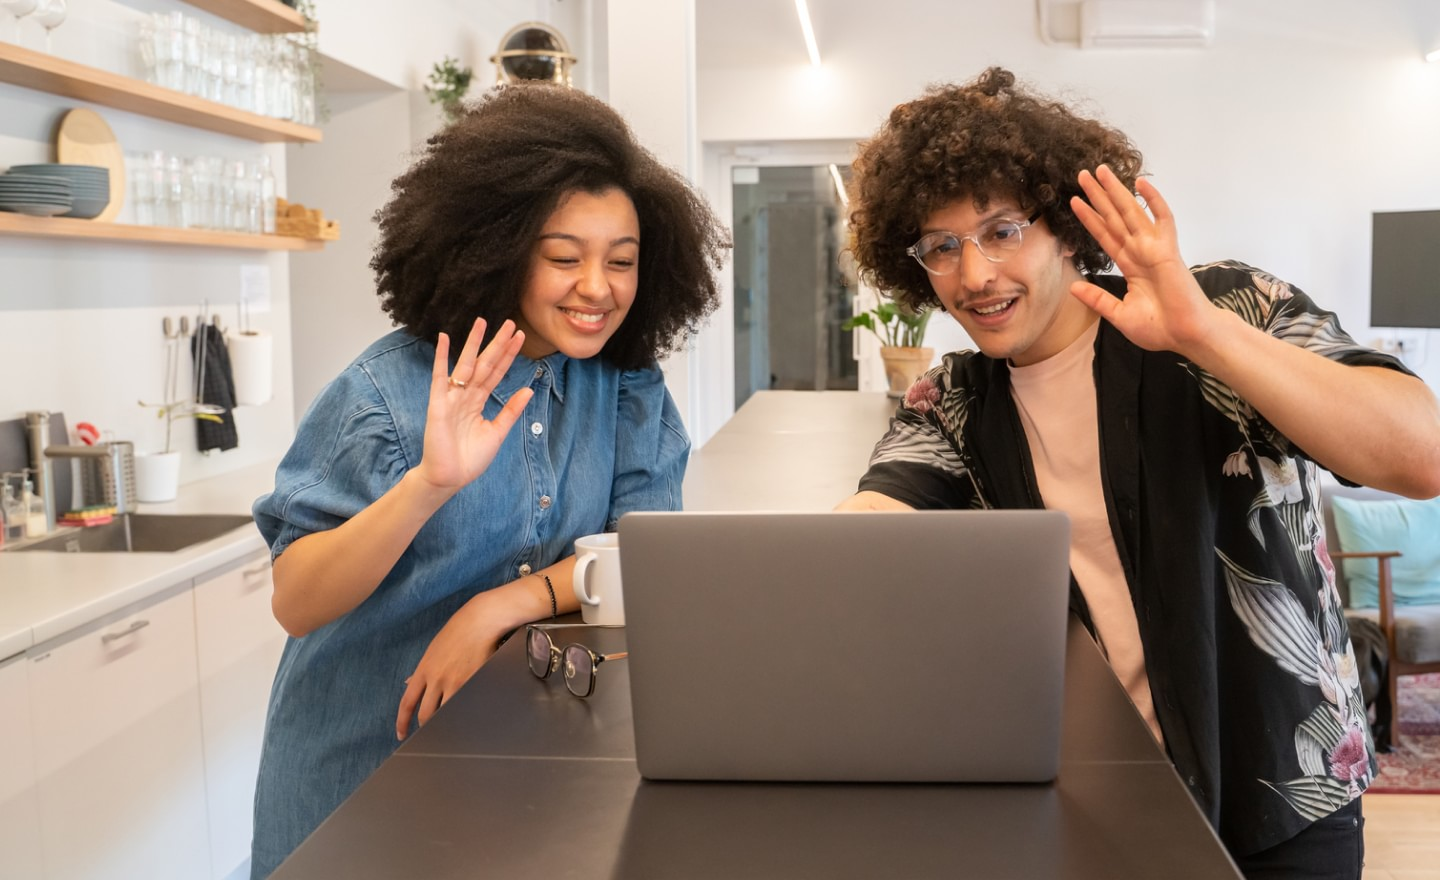 Man and woman attending video call waving